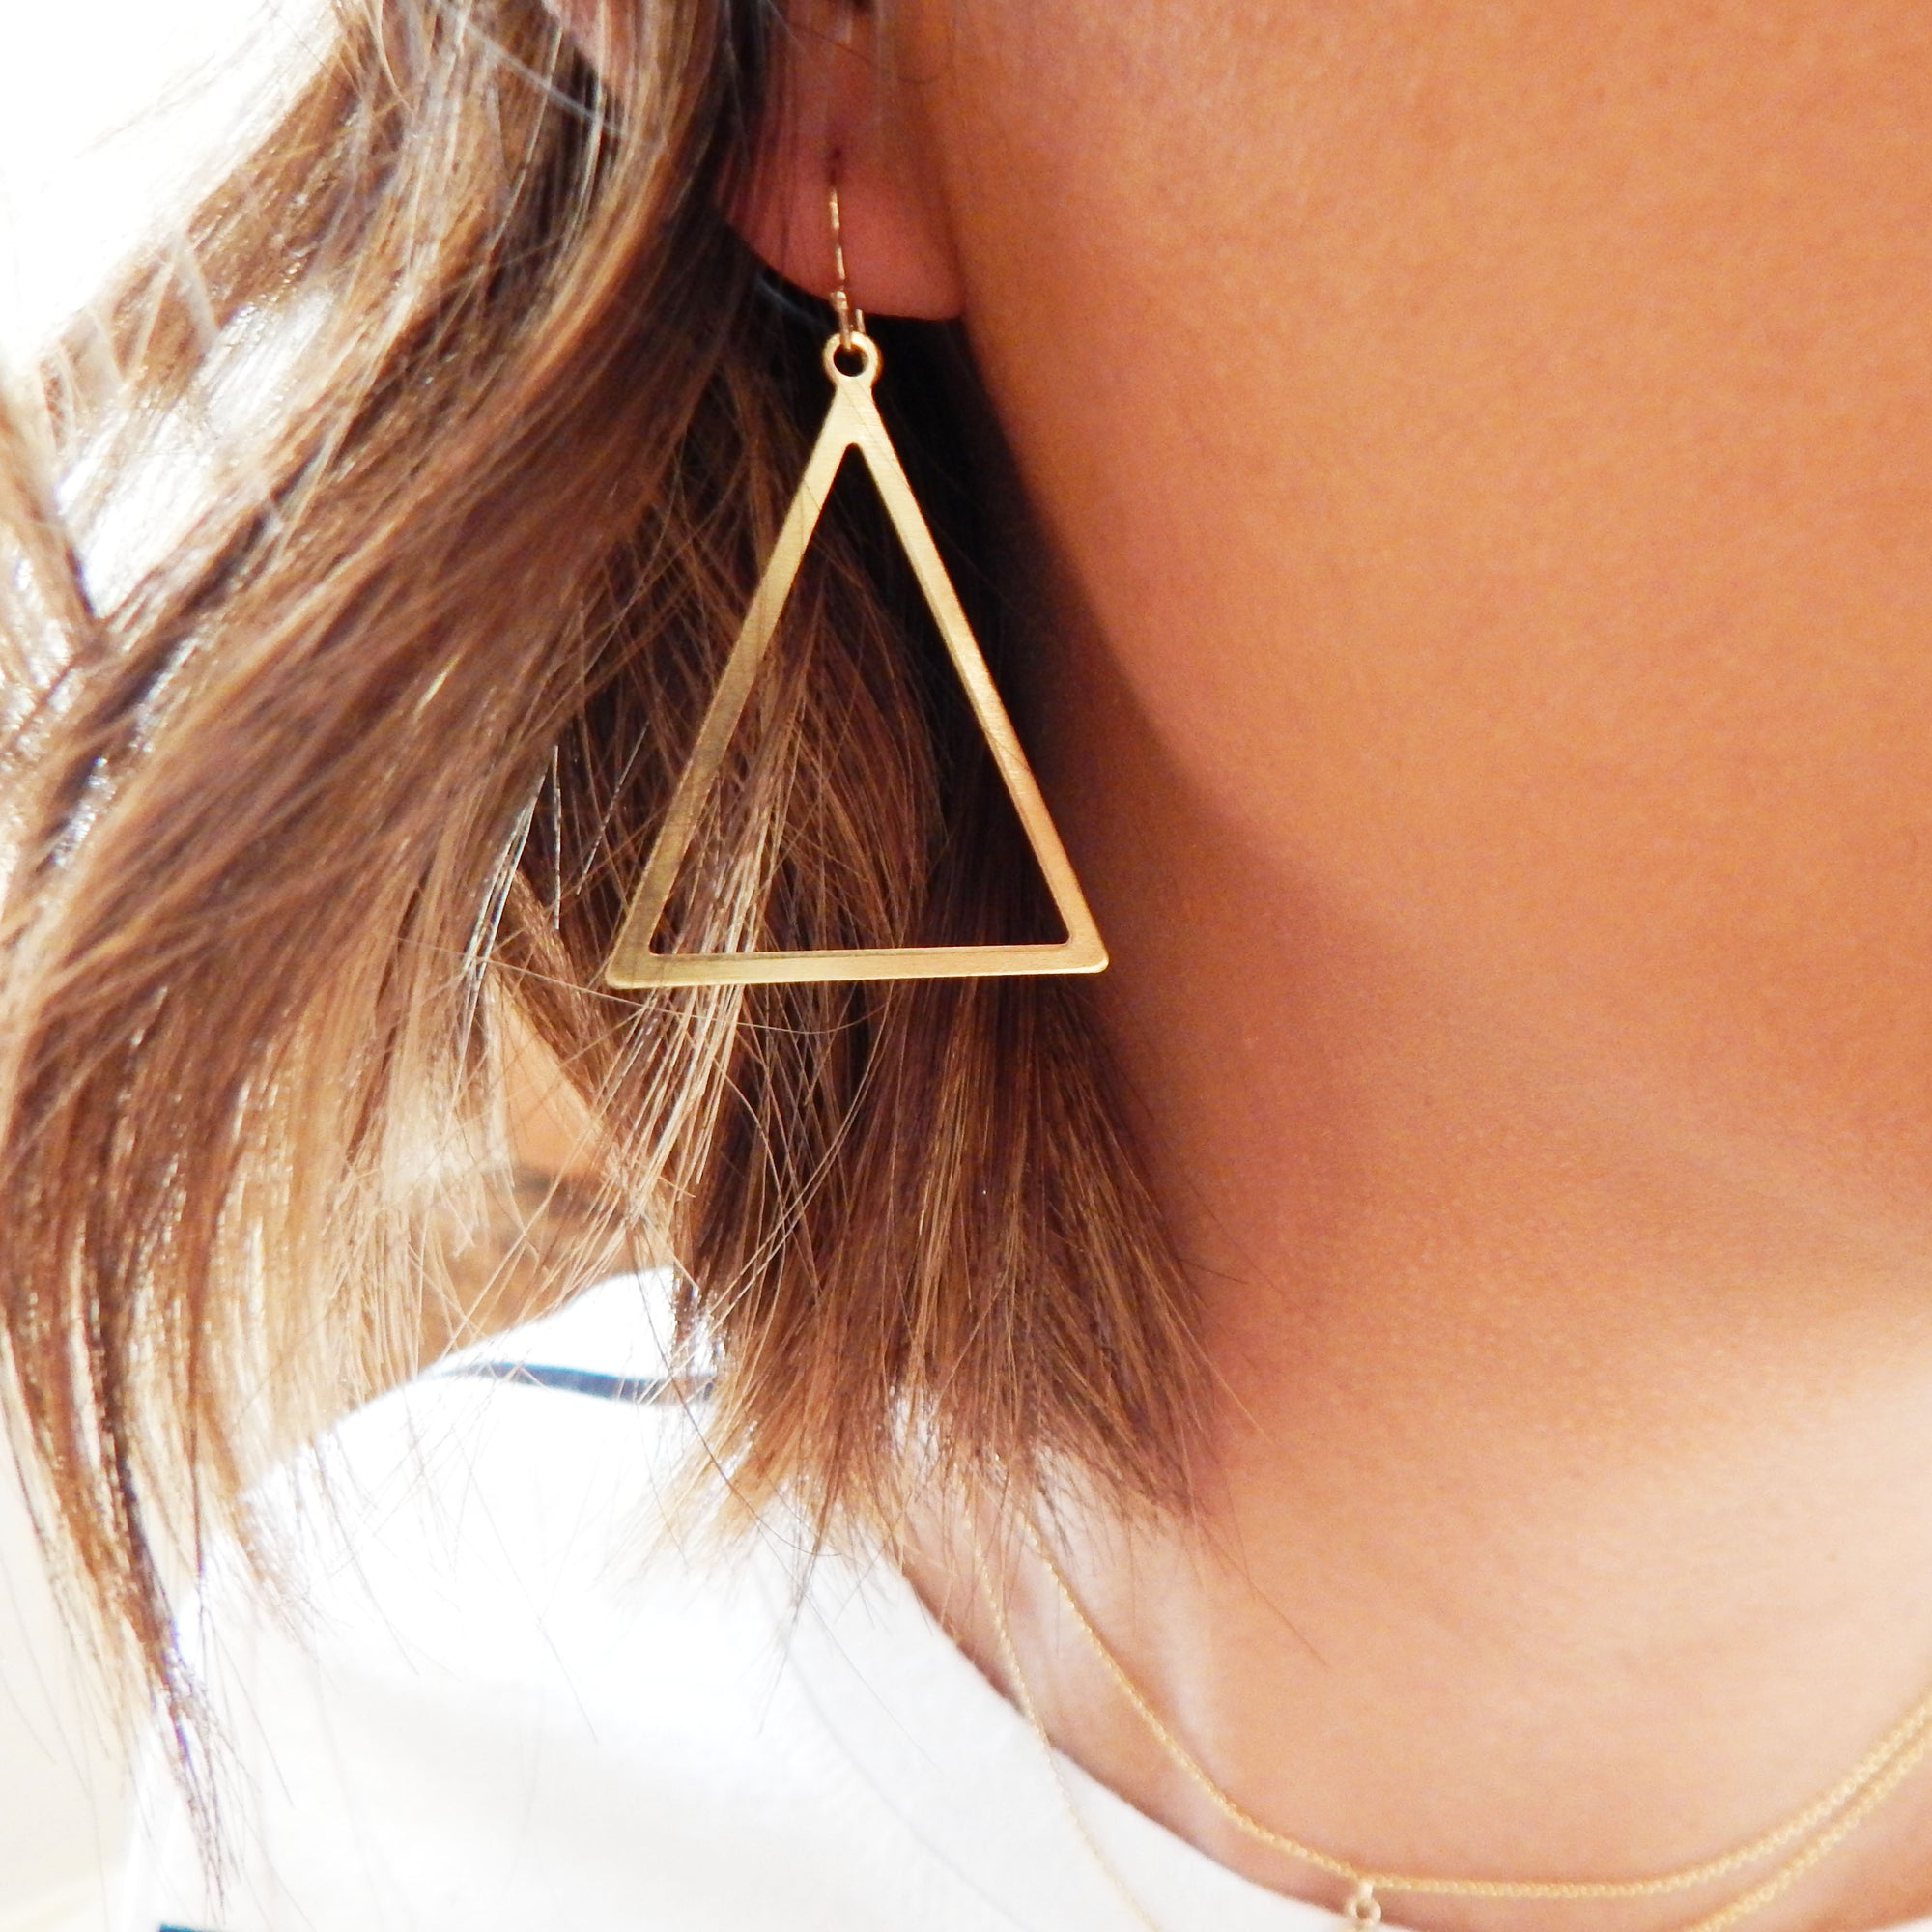 Orion earrings